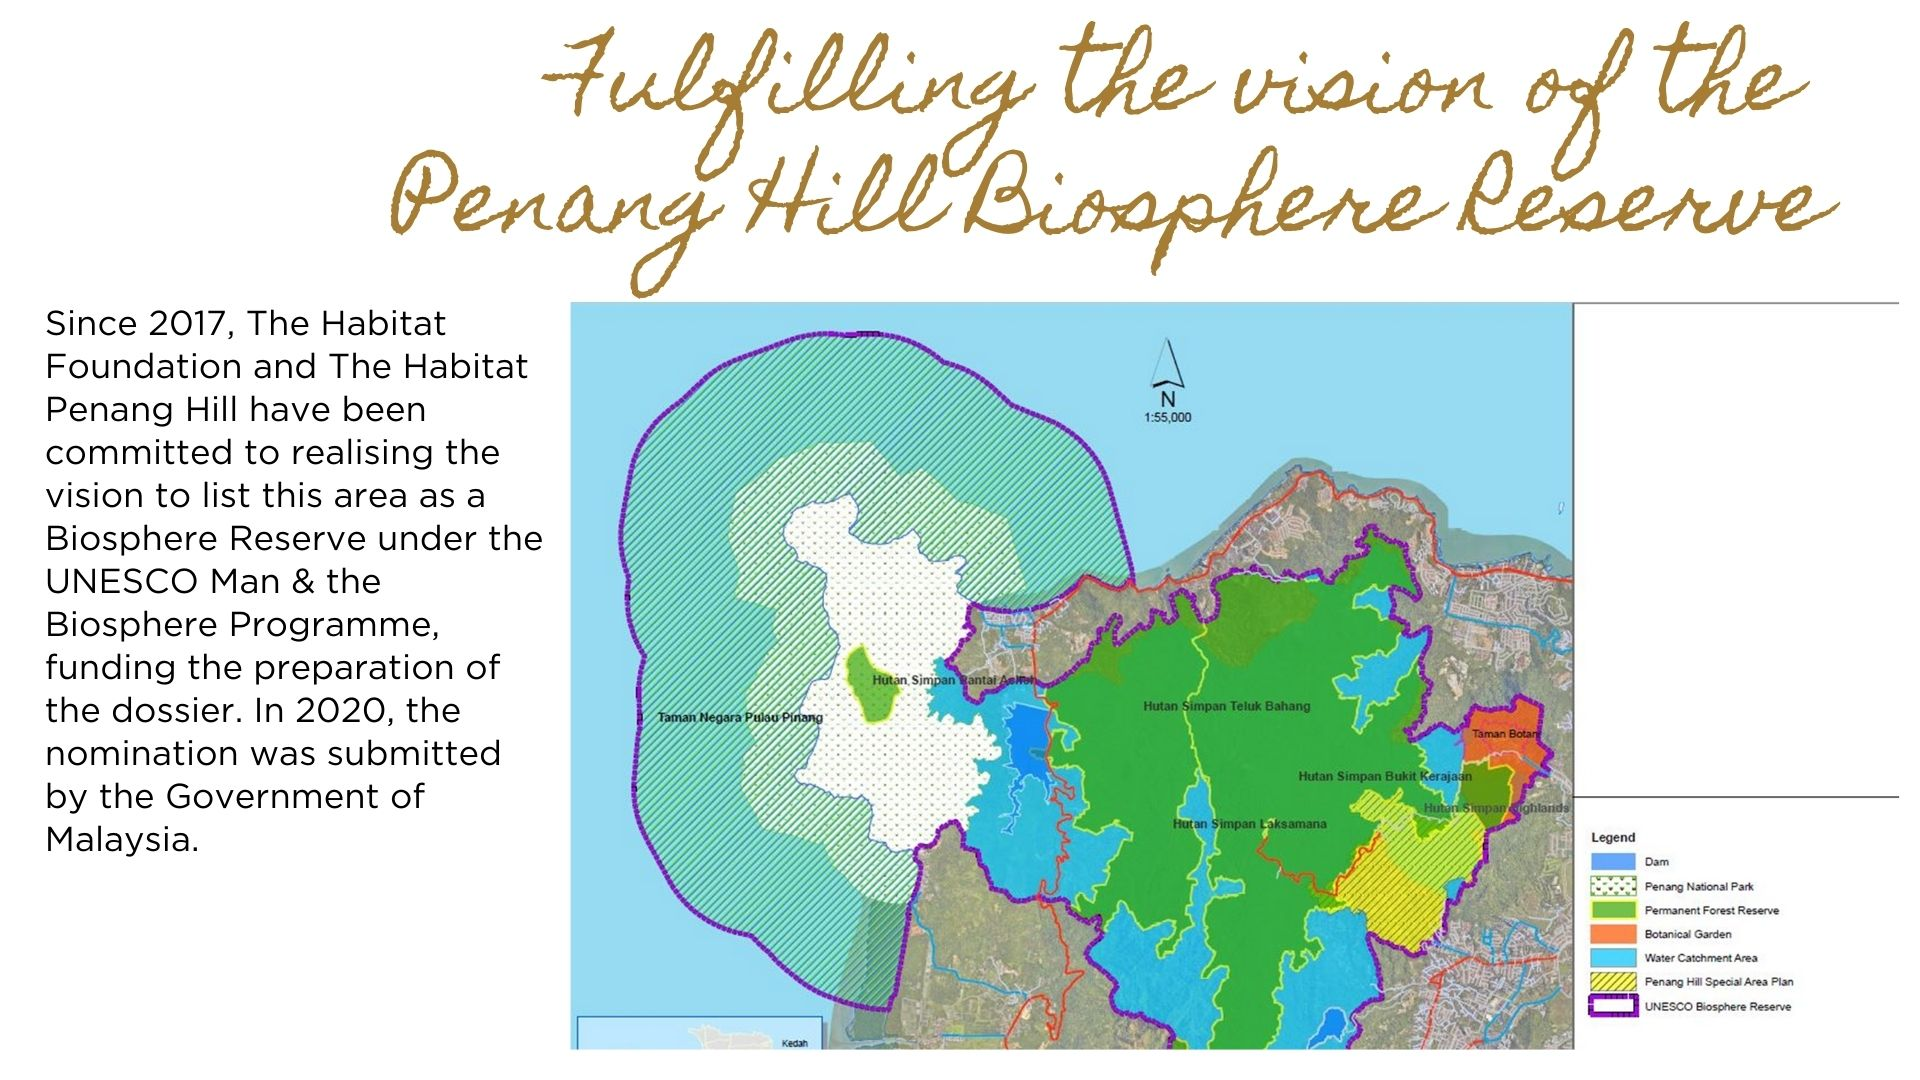 Advancing research in the proposed Penang Hill Biosphere Reserve